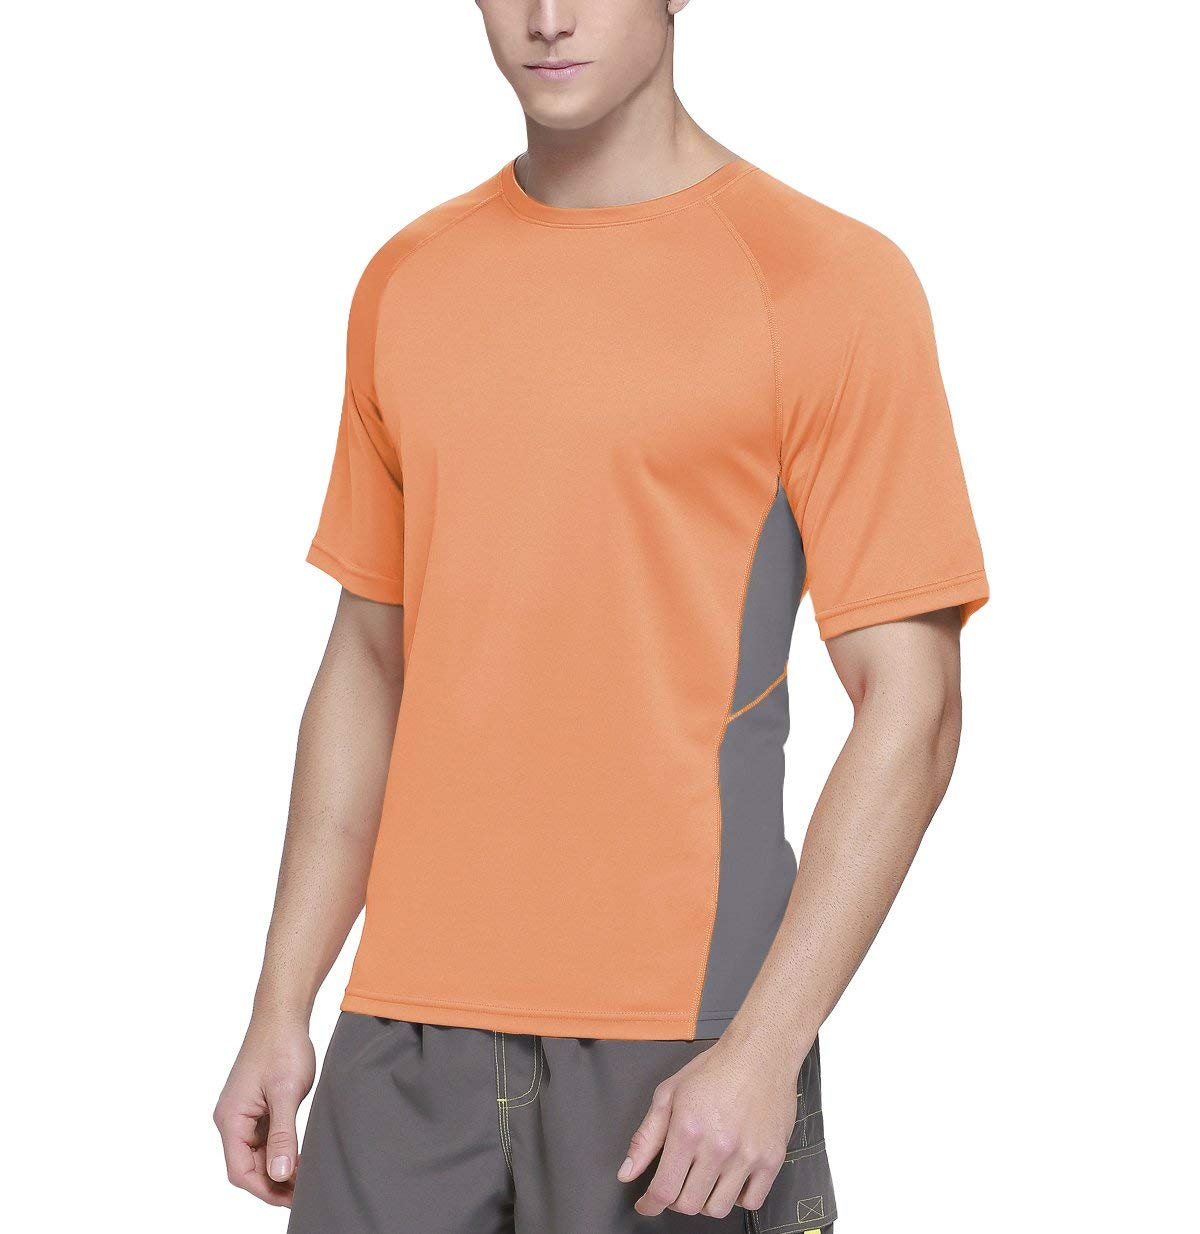 Baleaf Men's Short Sleeve Sun Protection Rashguard Swim Shirt UPF 50+ Fluorescent Orange S